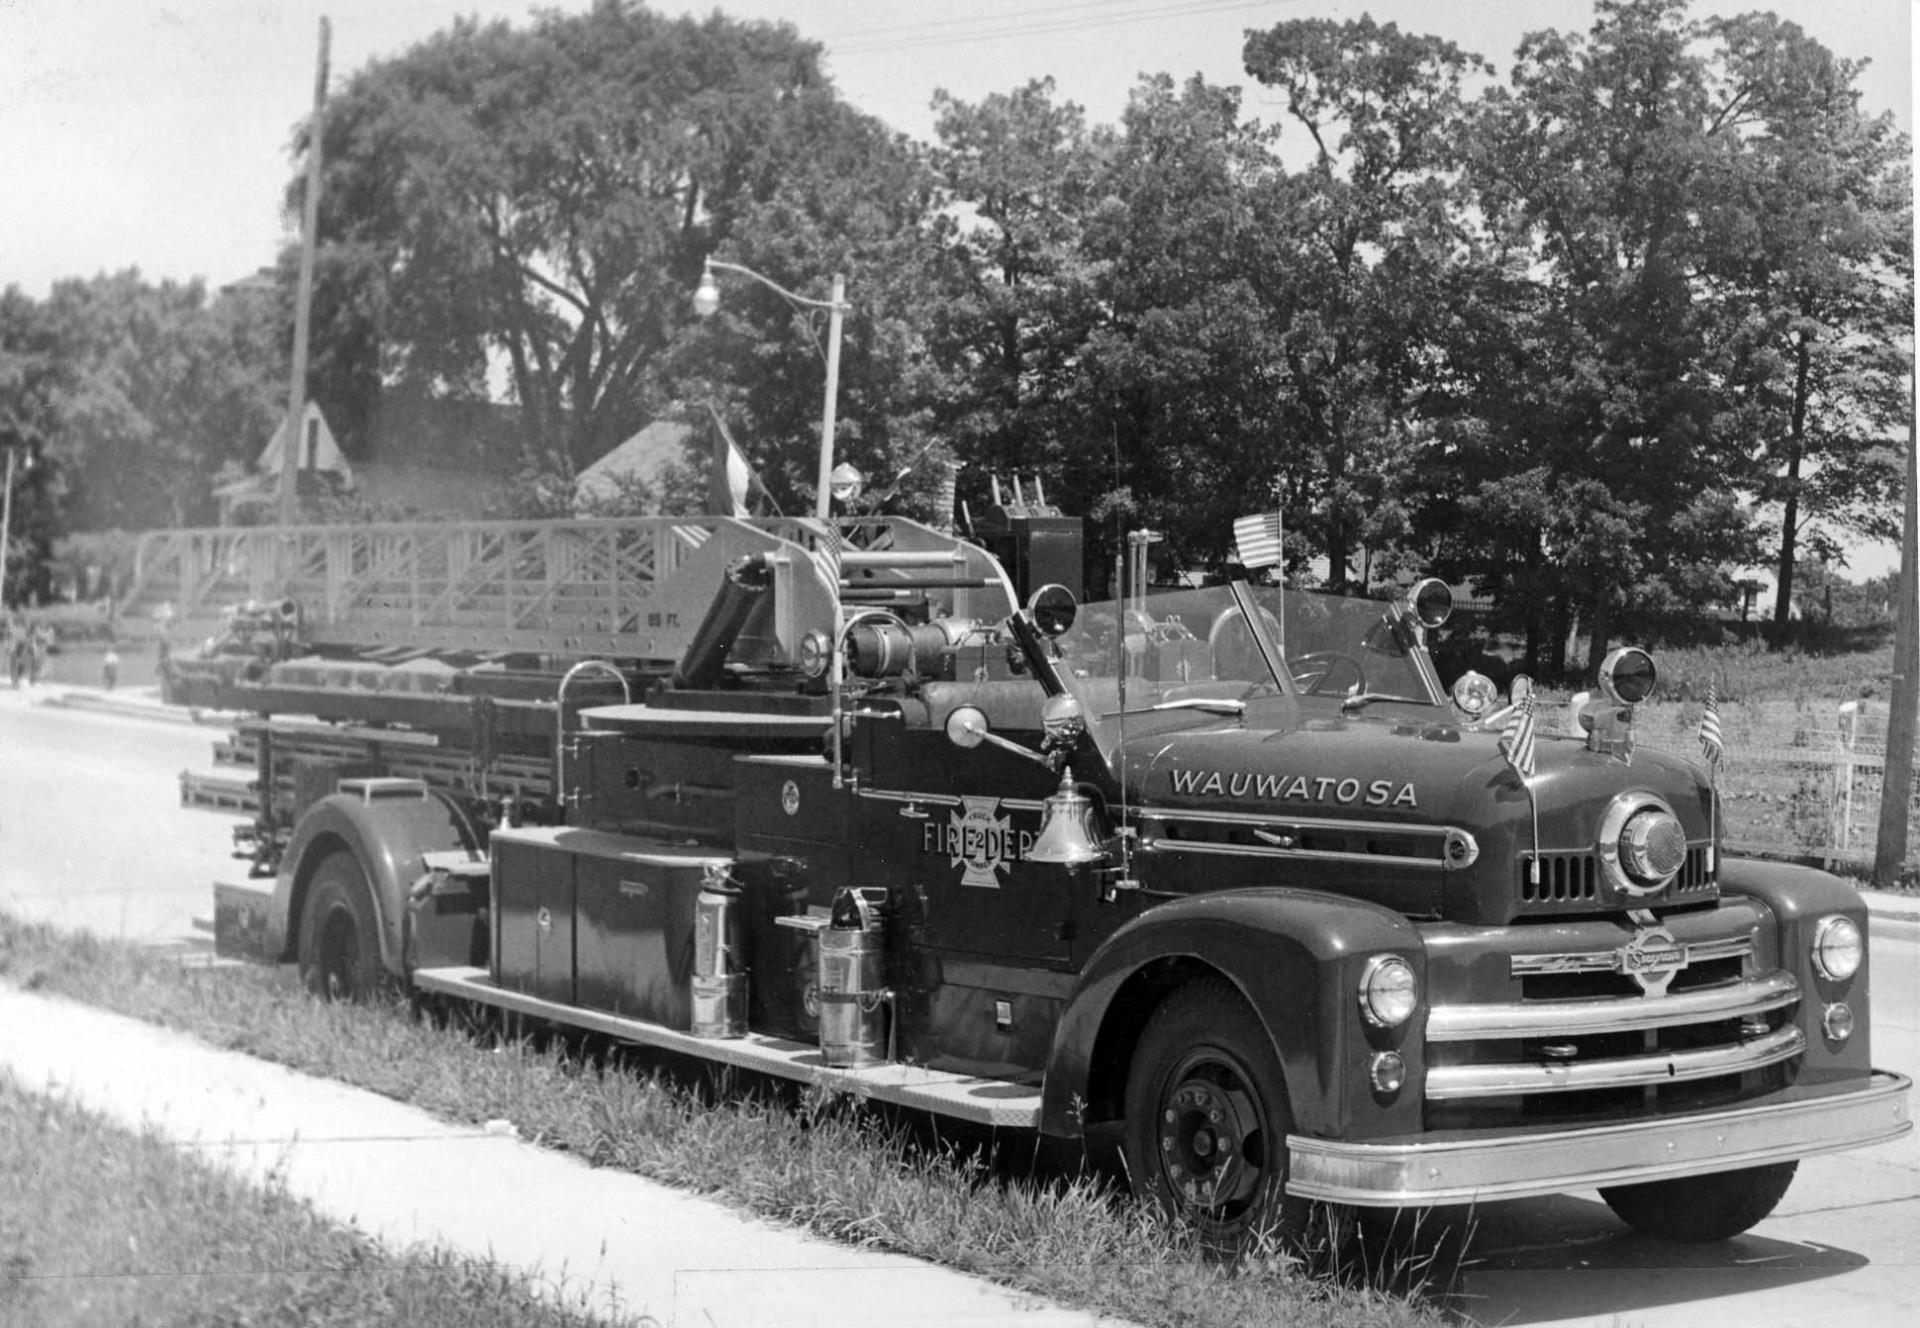 Fire trucks through the times.